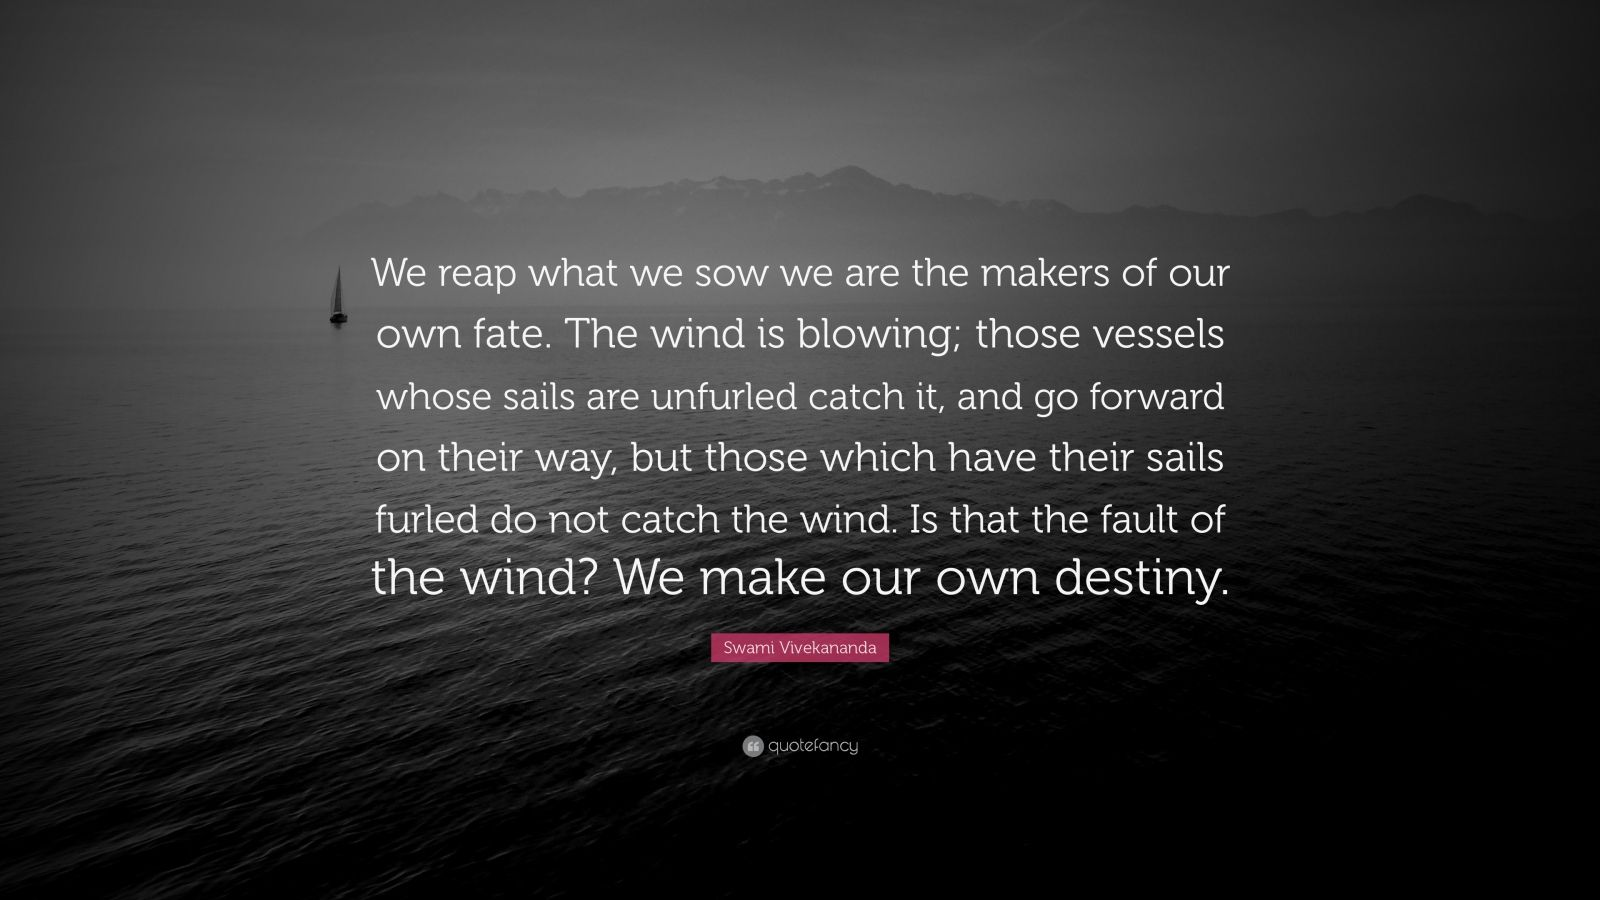 "Swami Vivekananda Quote: ""We reap what we sow we are the makers of our own fate. The wind is blowing; those vessels whose sails are unfurled catch it, and go forward on their way, but those which have their sails furled do not catch the wind. Is that the fault of the wind? We make our own destiny."""